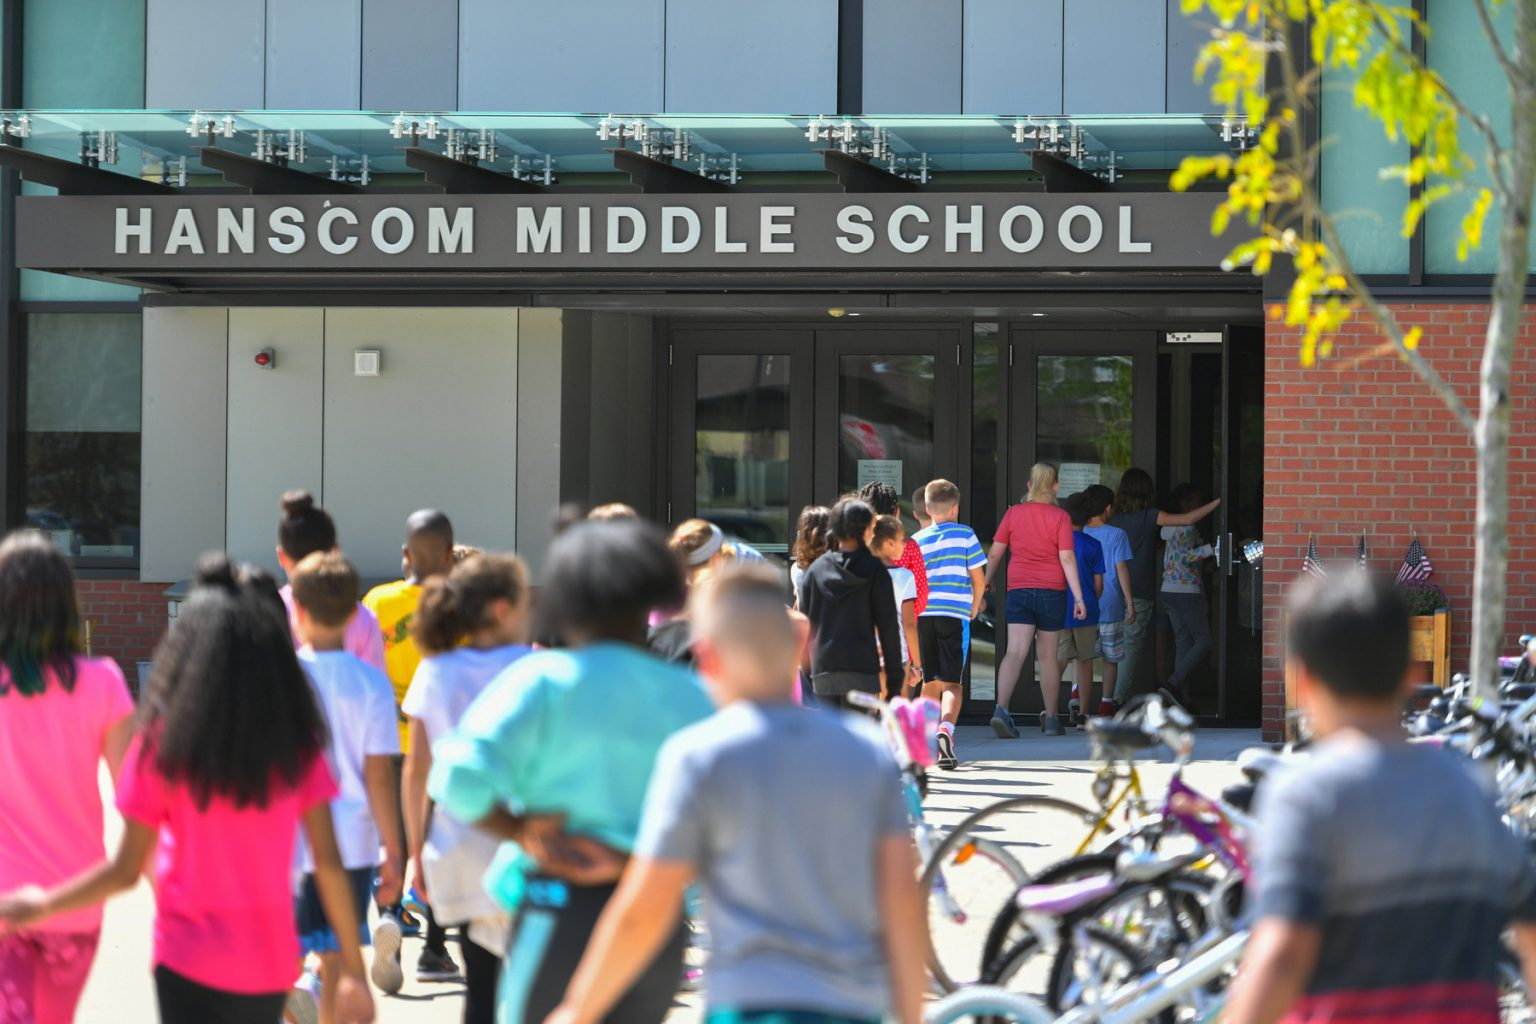 Students file into middle school.